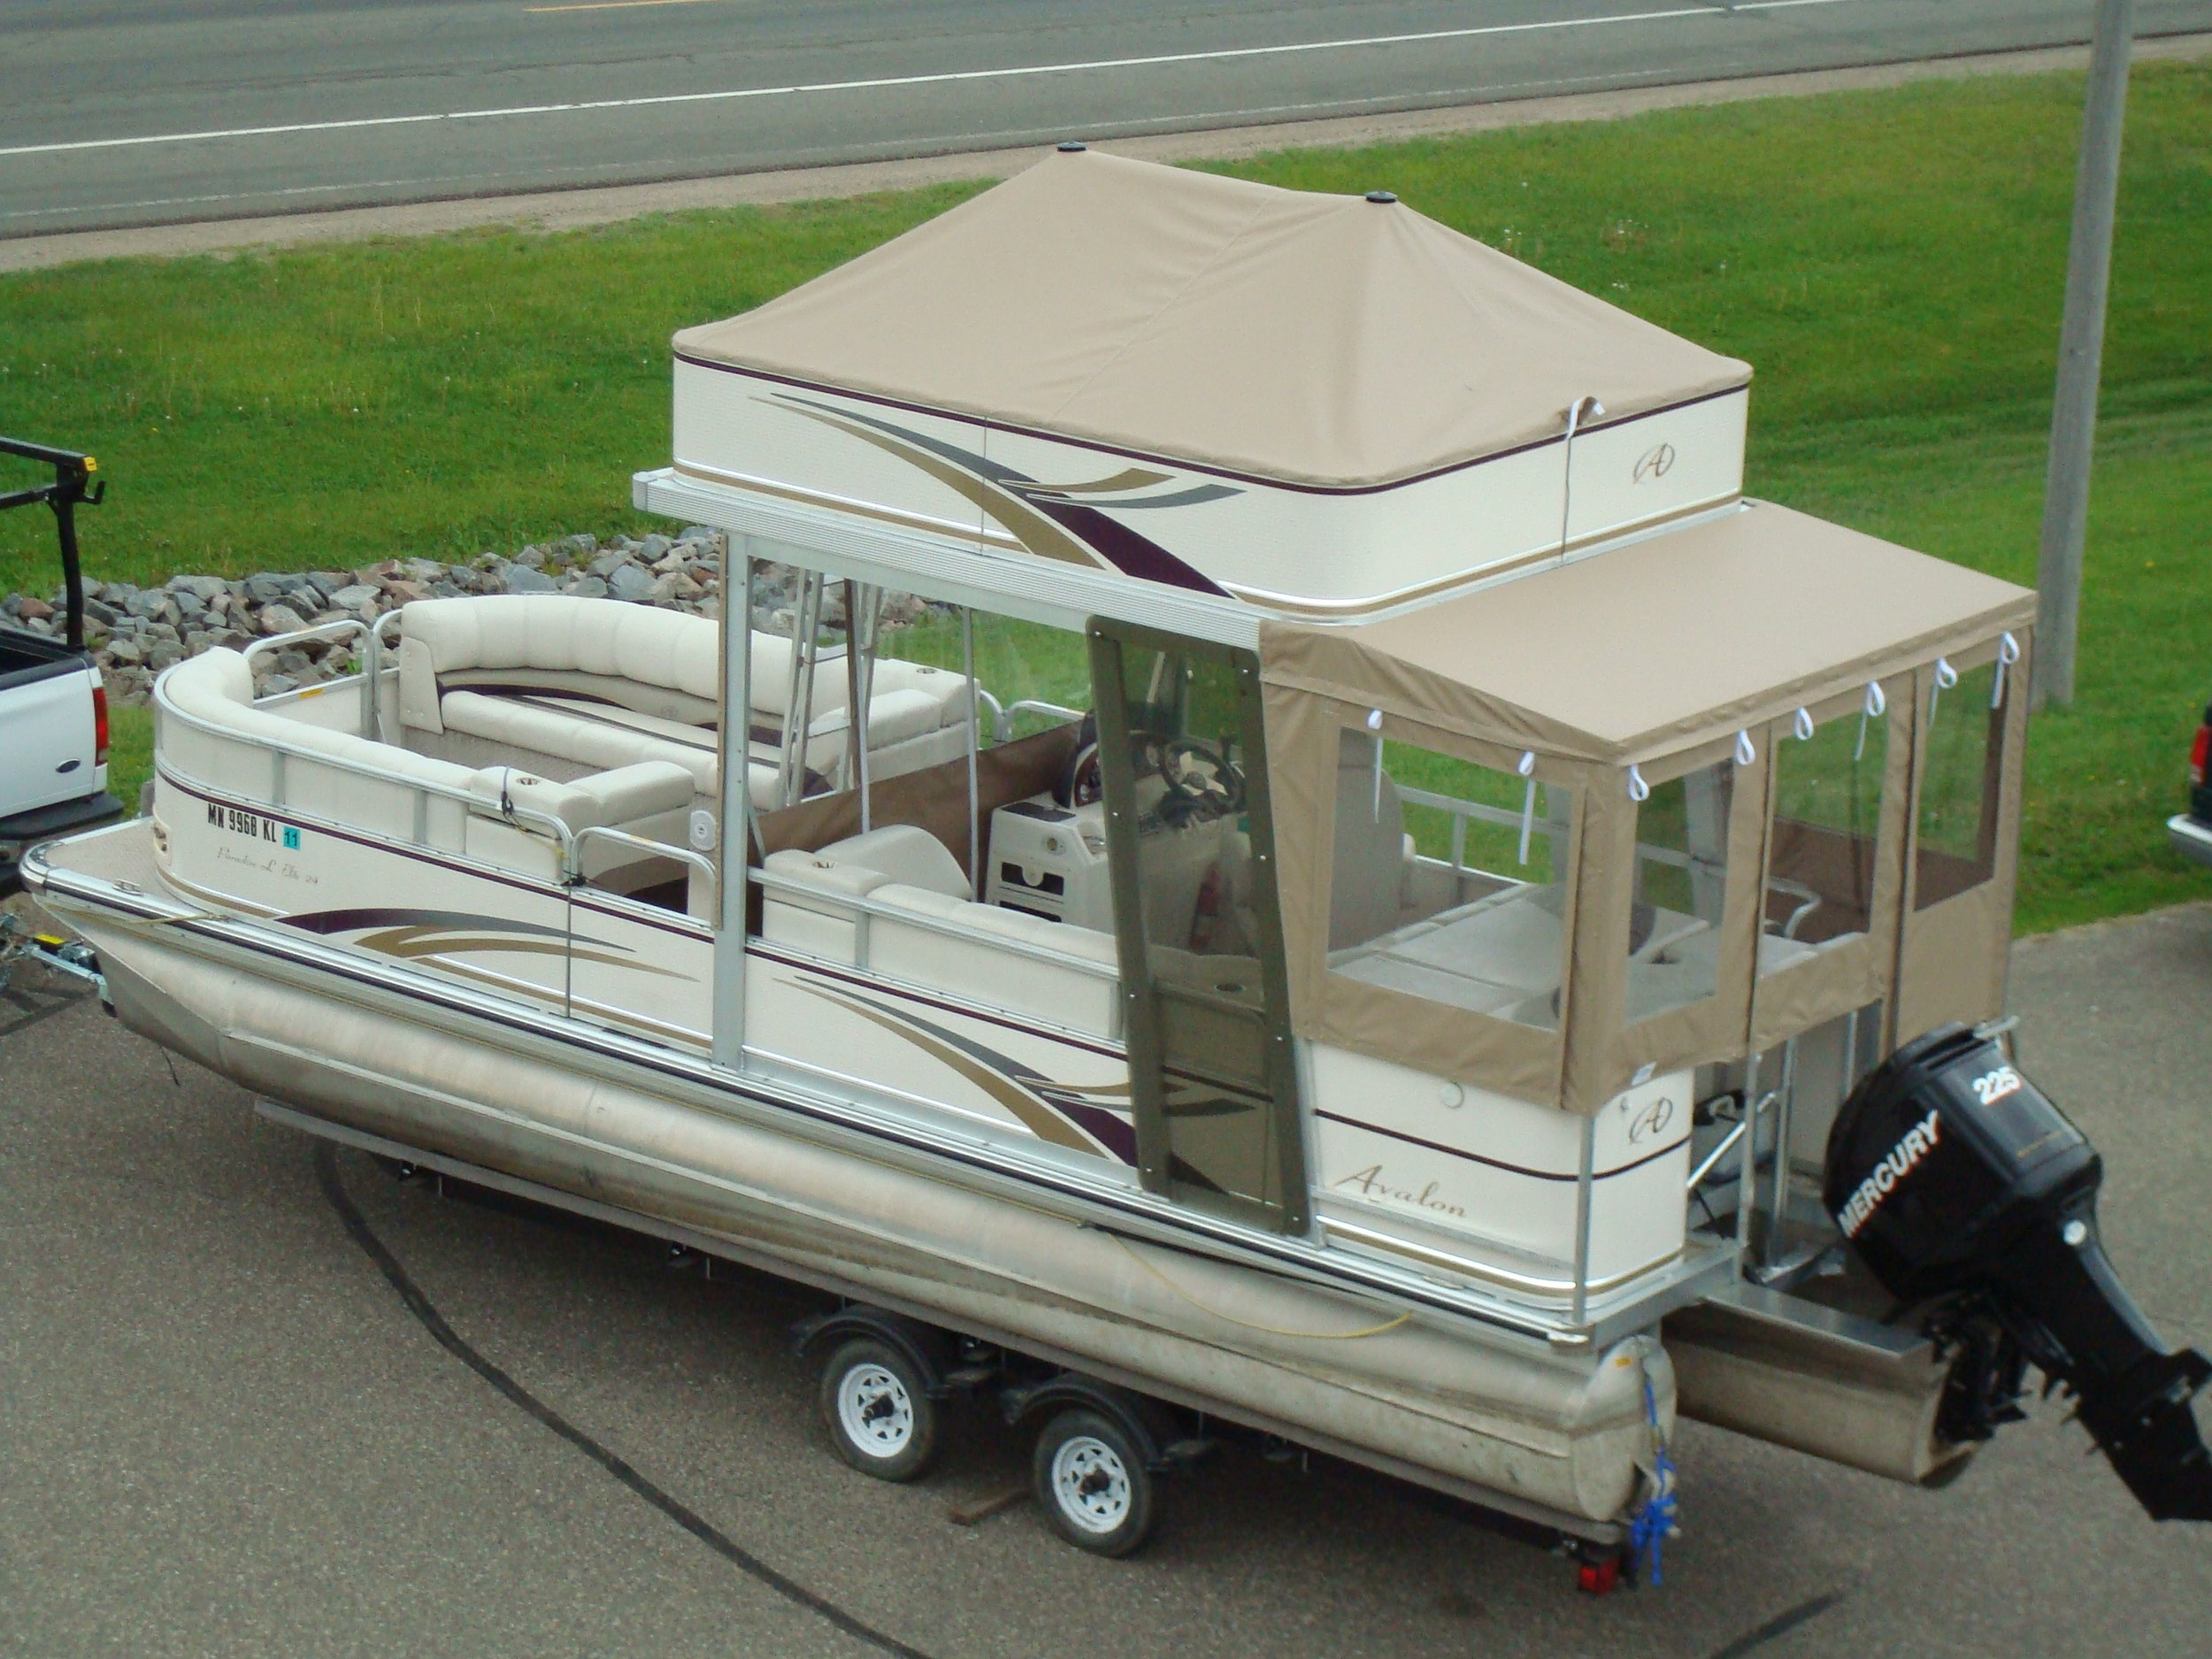 Tops Custom Pontoon.JPG